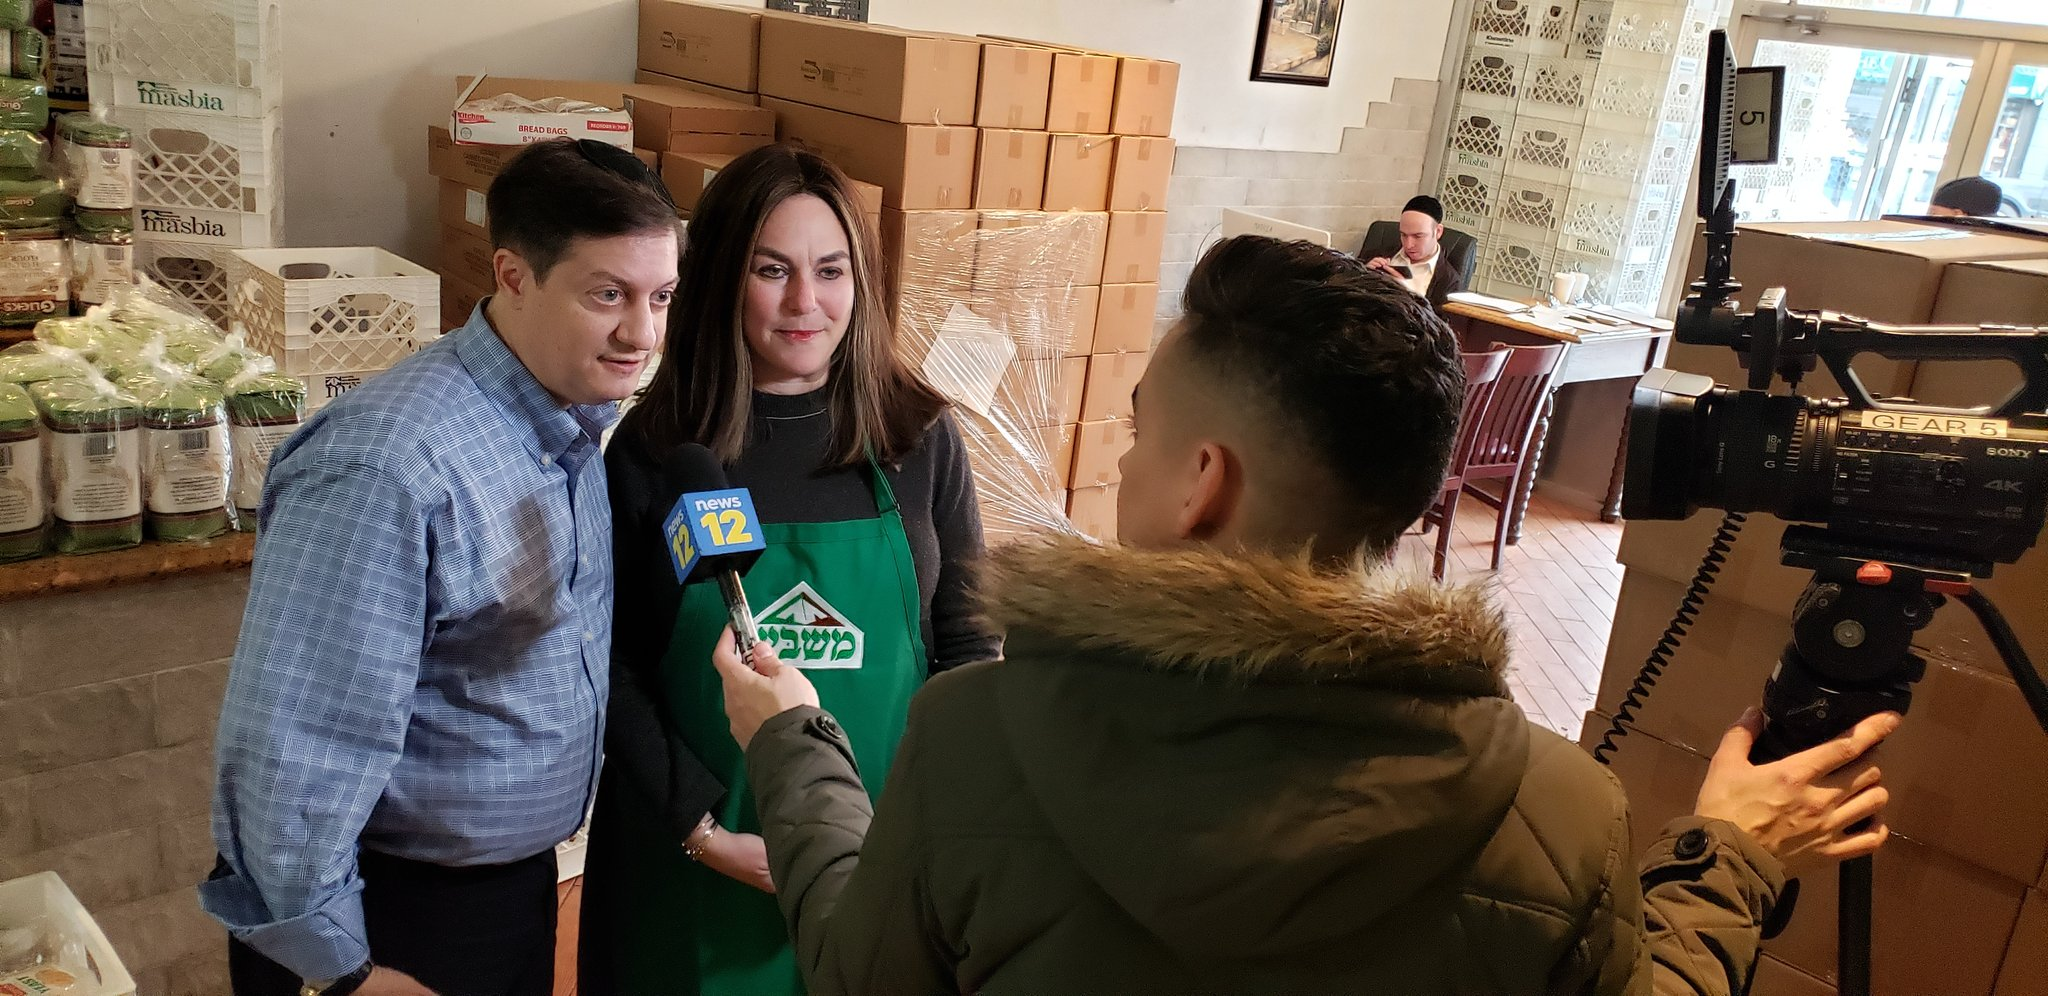 reporter Arnold Davick presents the story of Leora to distribute 1000 challahkits to the needy